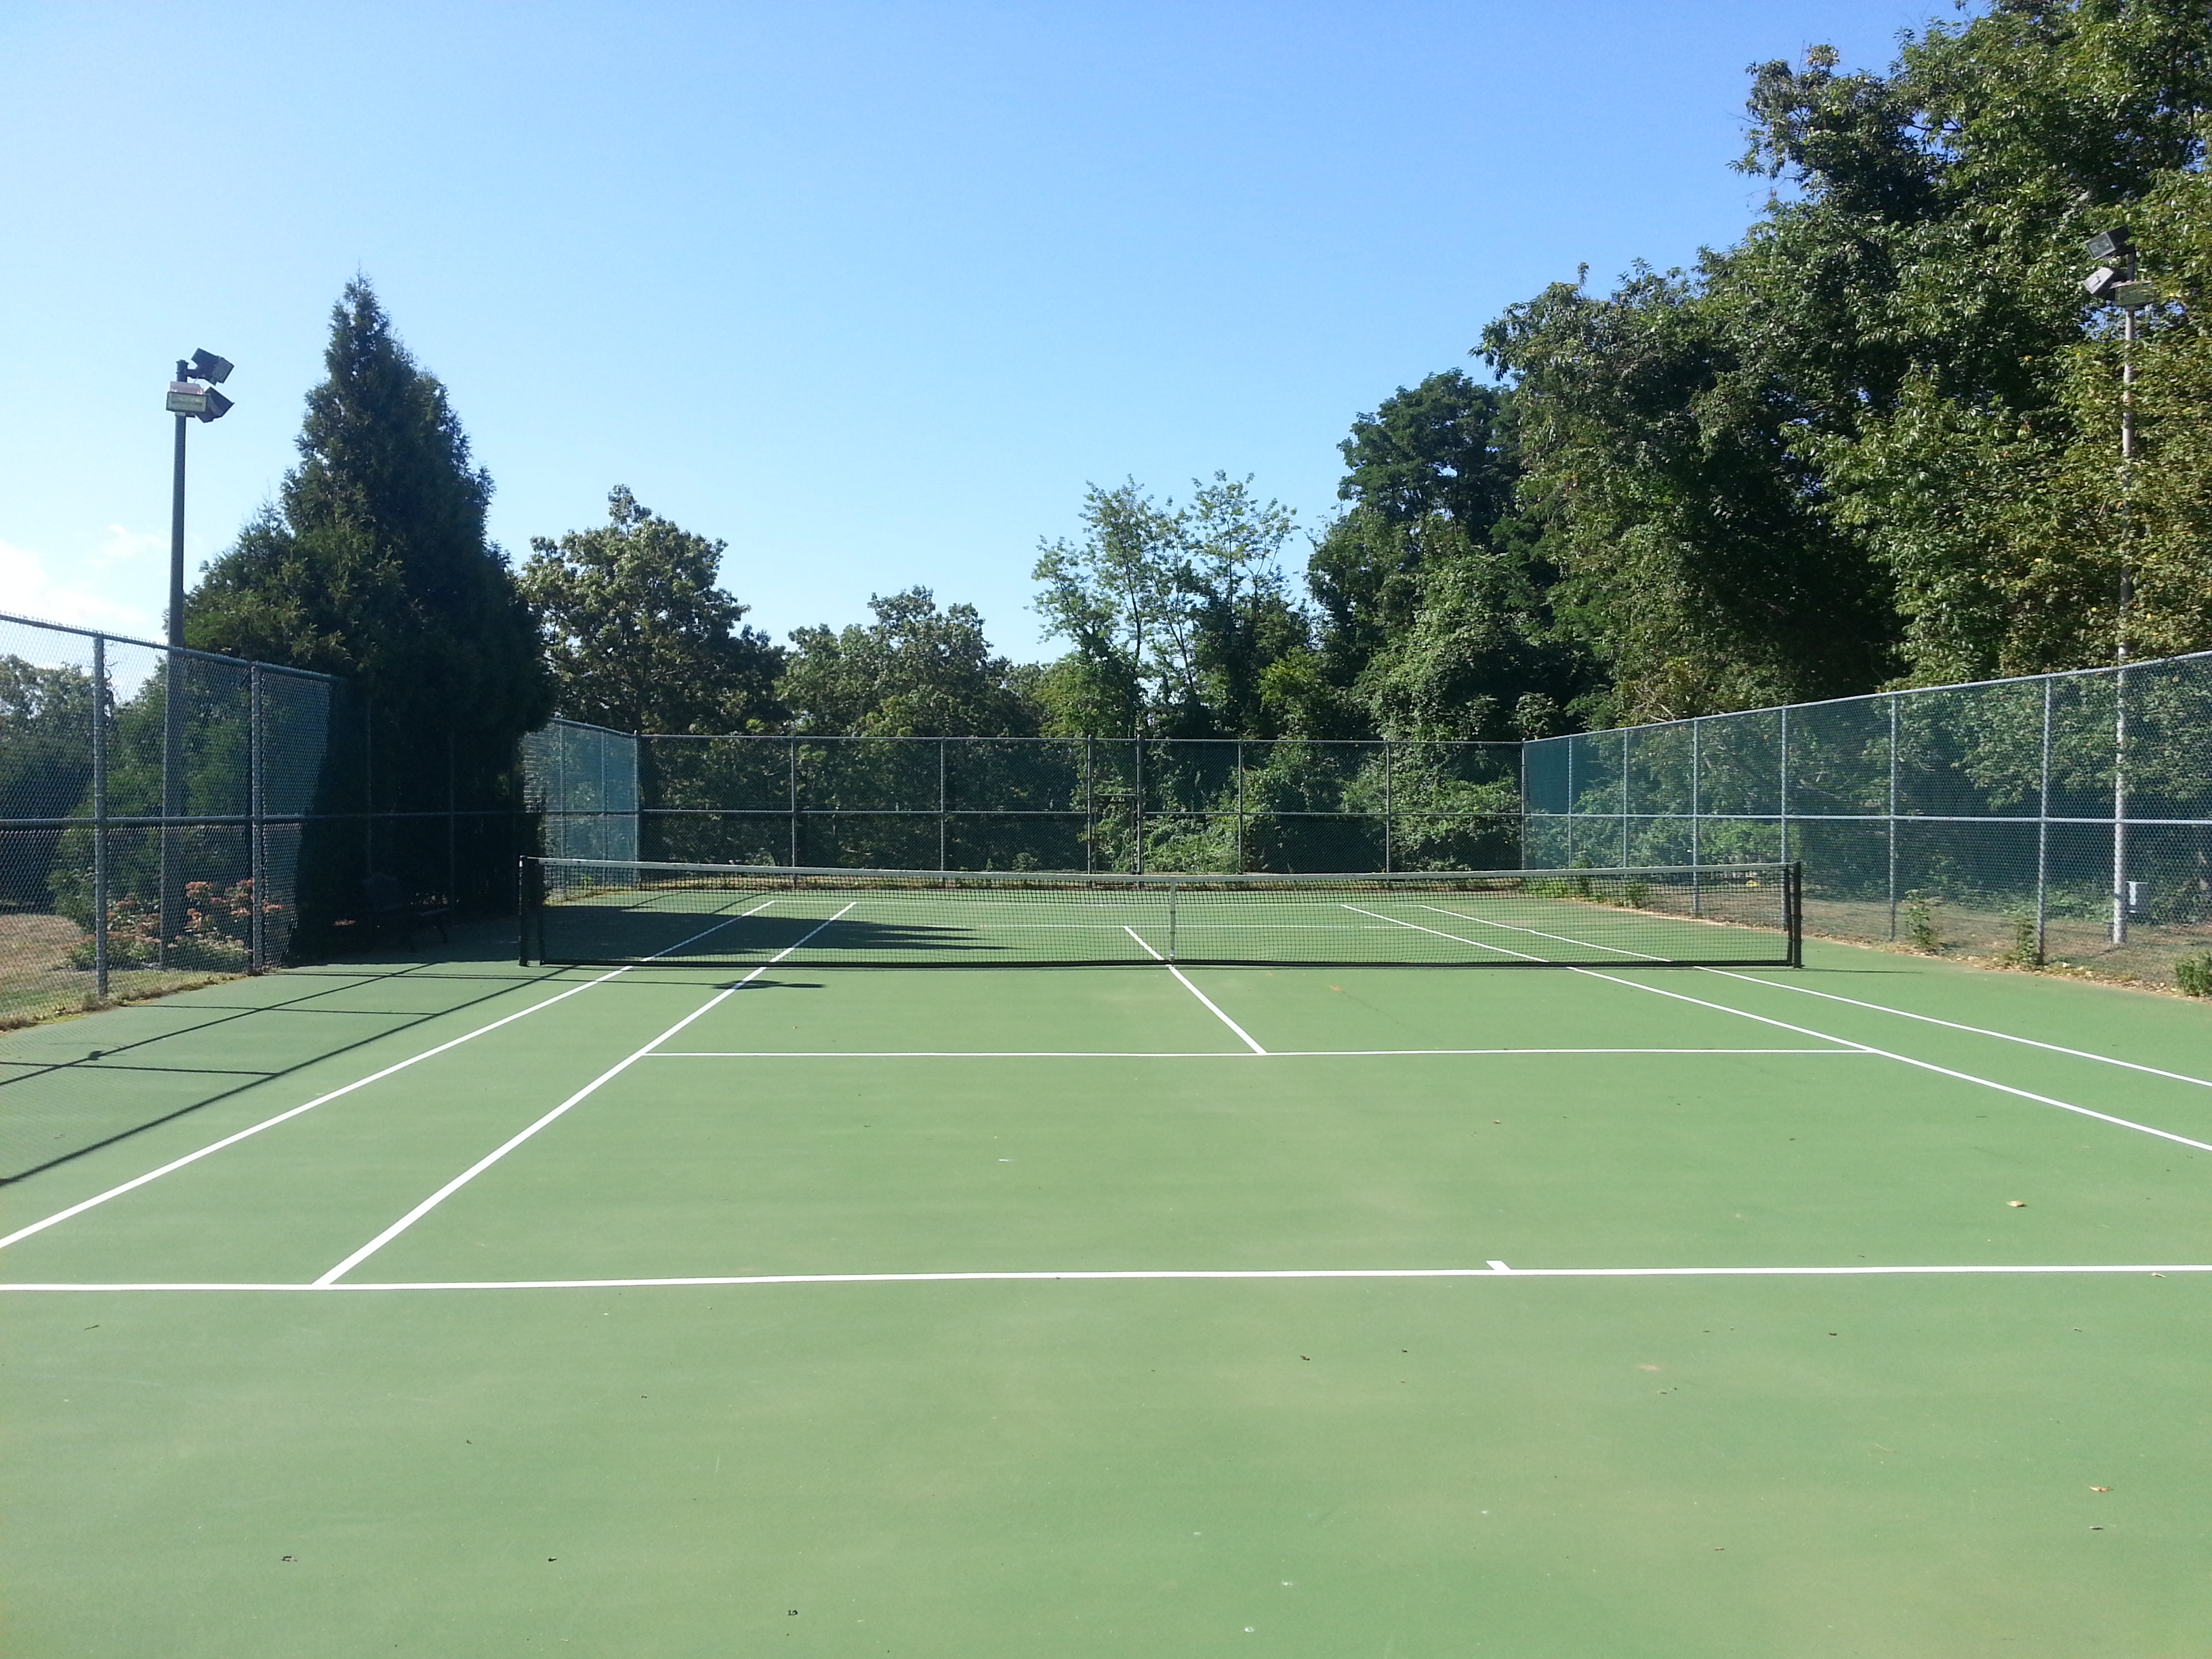 Among the amenities at Easpointe is this tennis court located next to the pool.